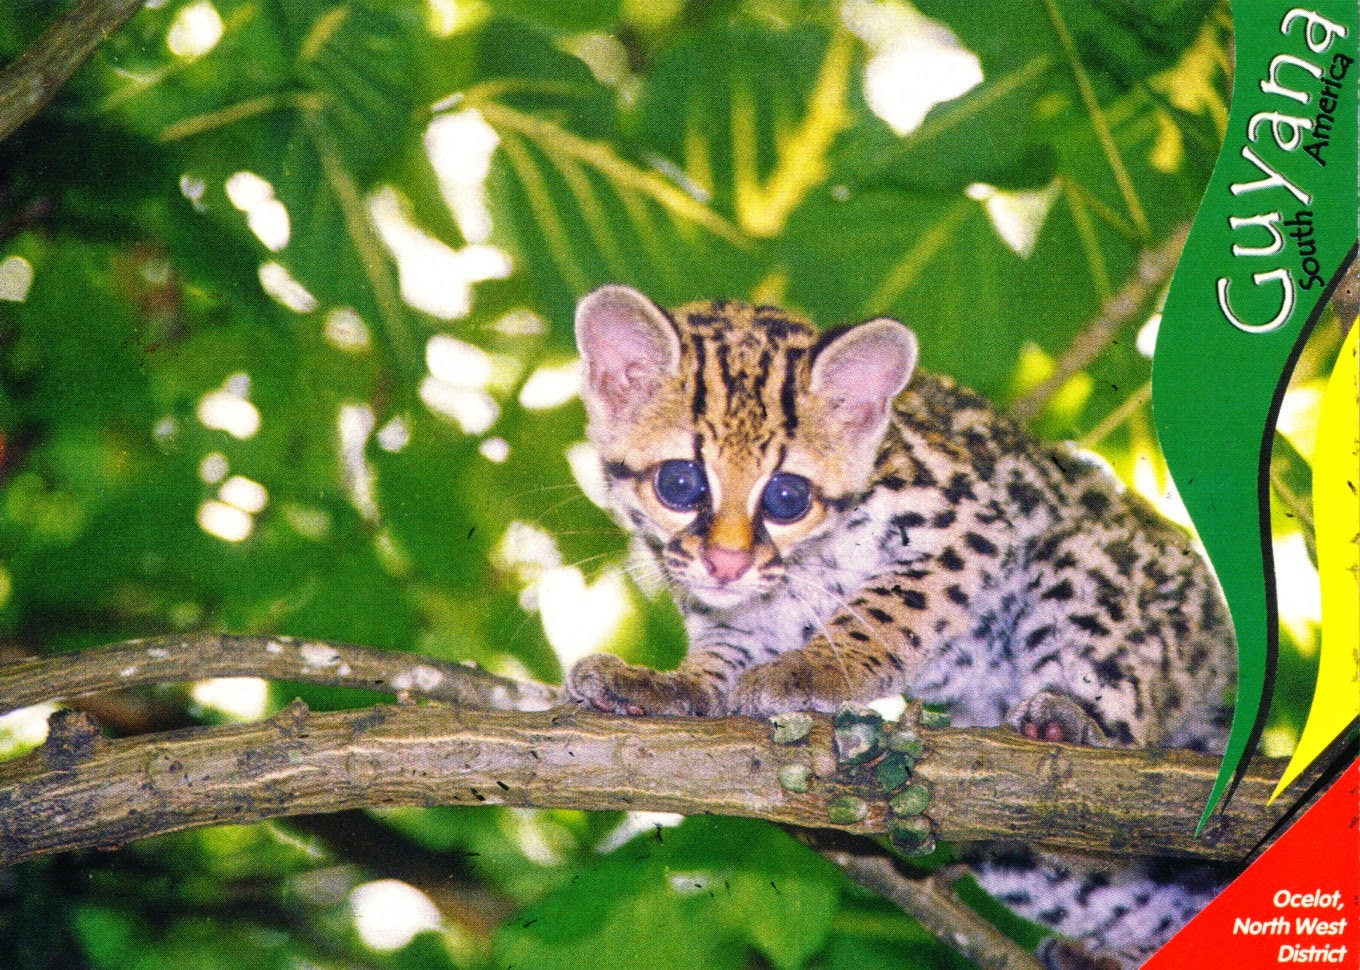 postcard, guyana, ocelot, all skin teeth nah laff